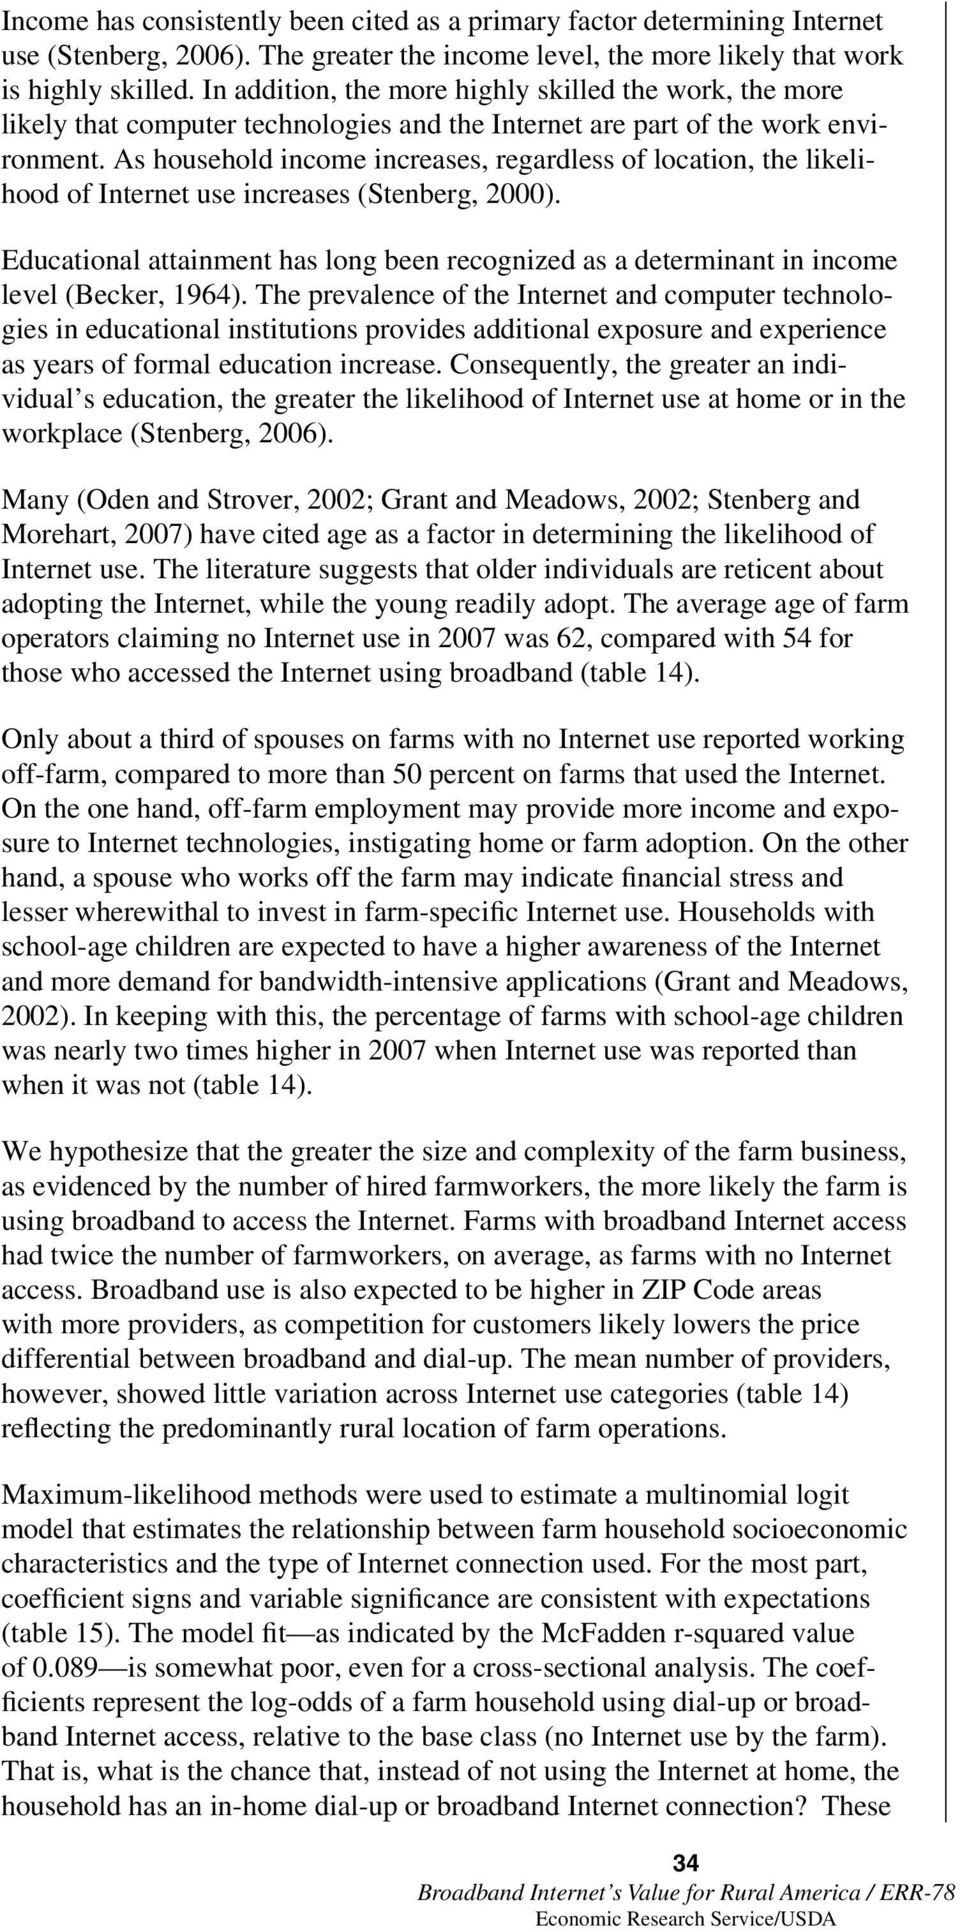 As household income increases, regardless of location, the likelihood of Internet use increases (Stenberg, 2000).